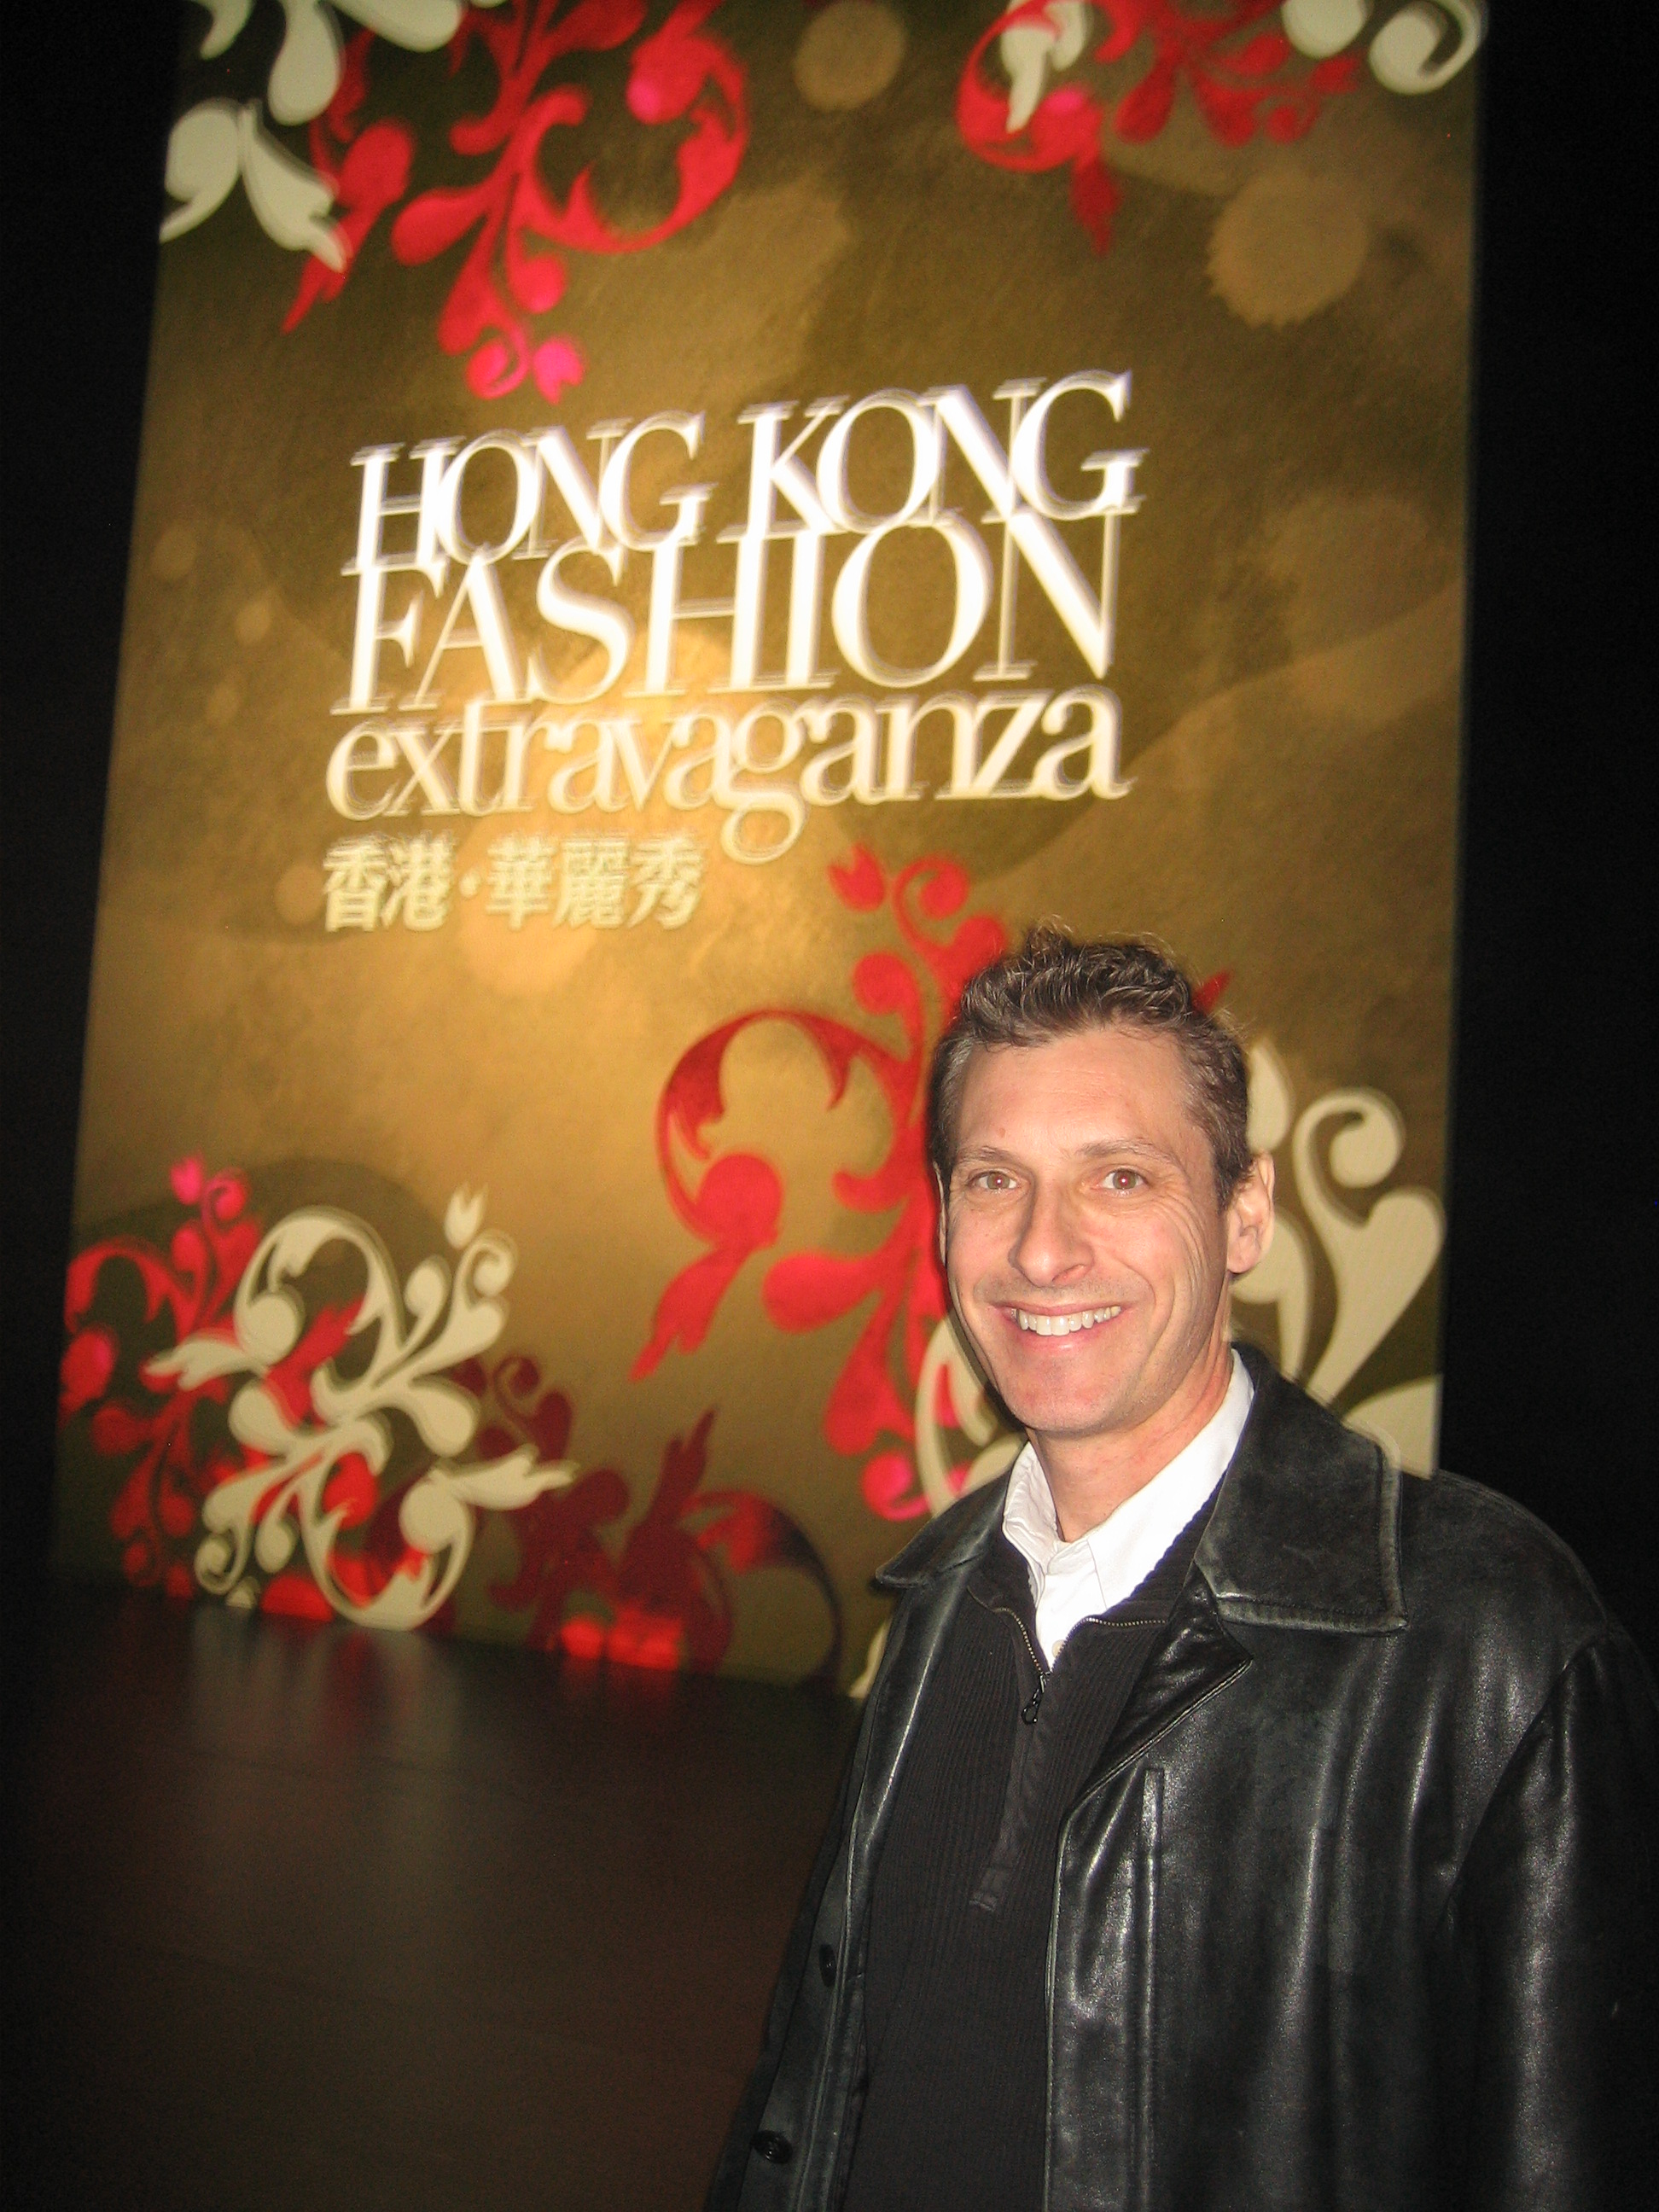 Scott visits Hong Kong Fashion Show